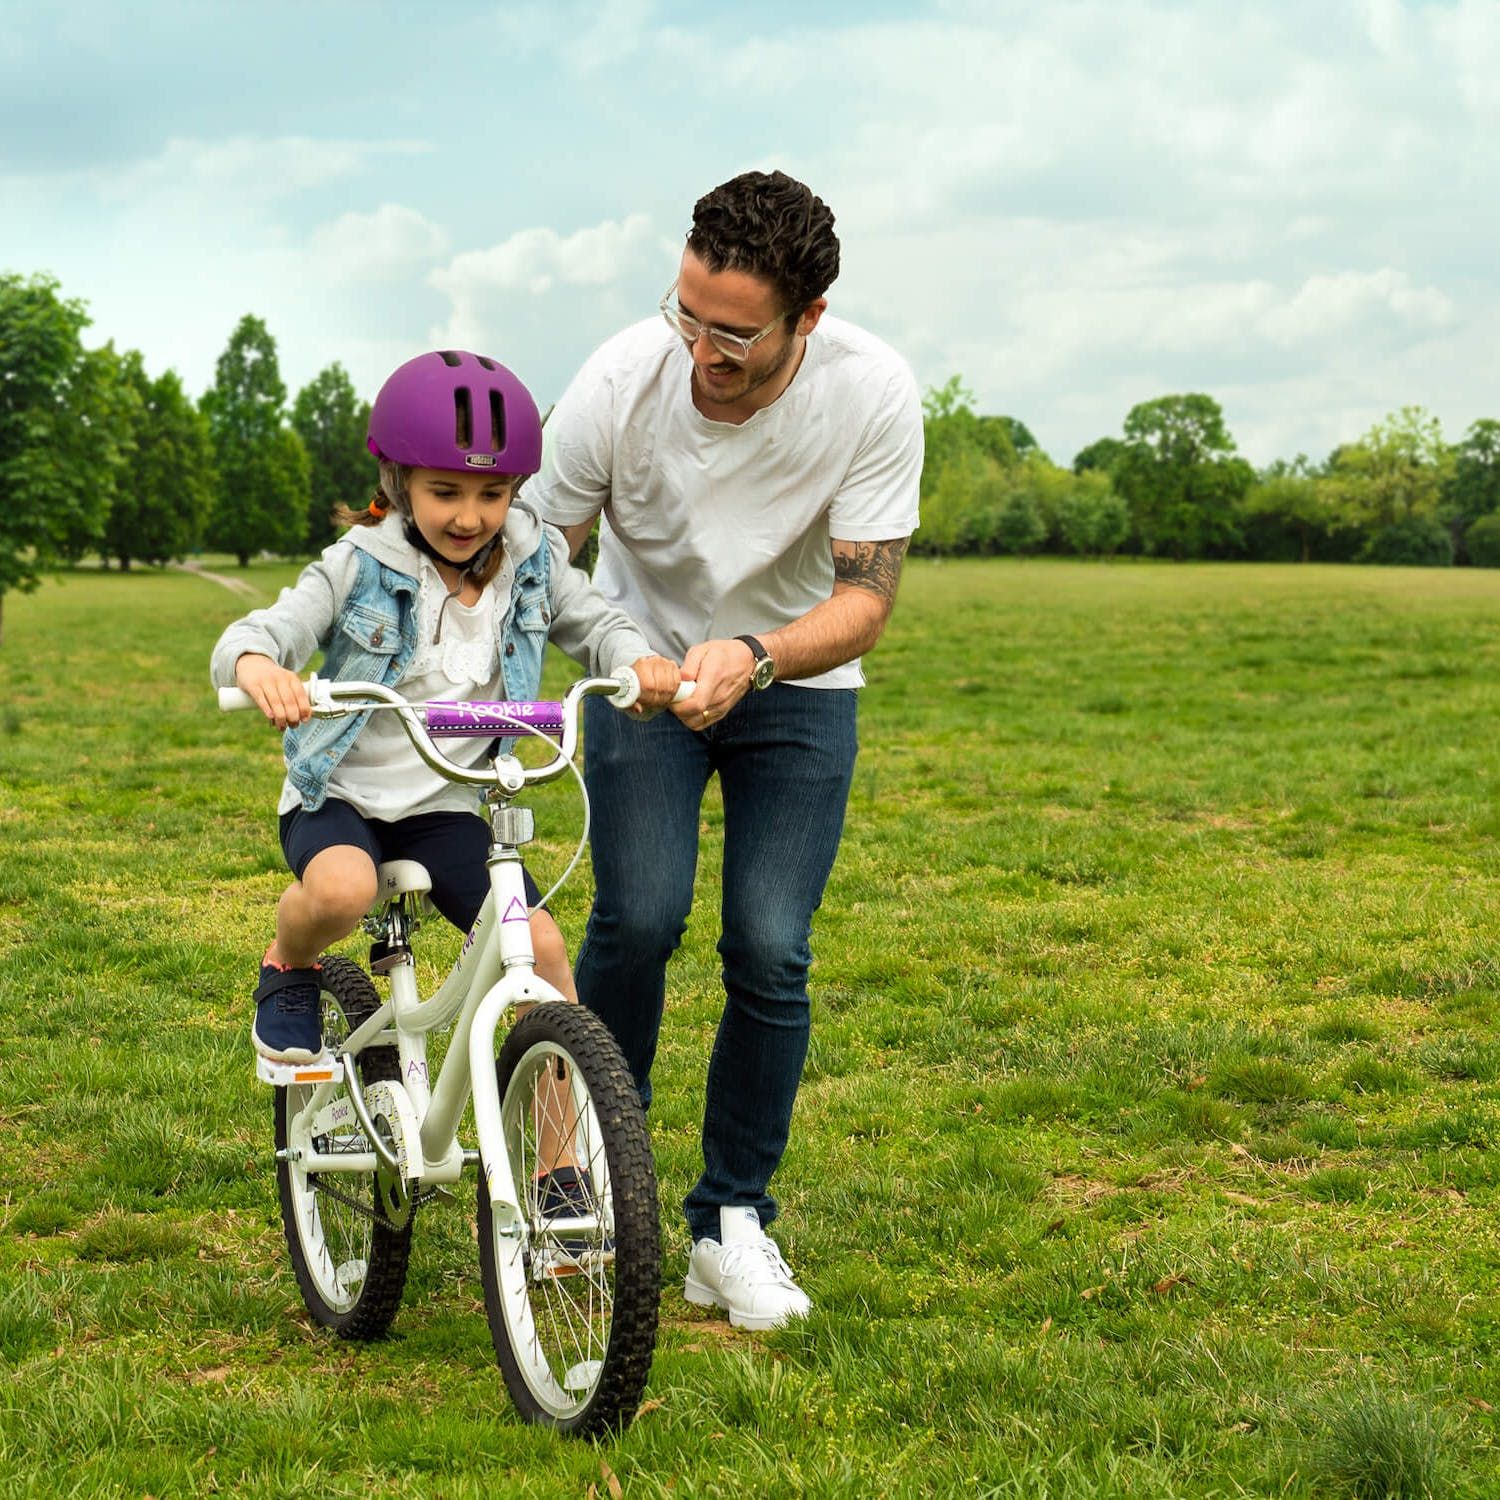 An adult in a white shirt helps a child in a jean vest learn to ride a bike in the middle of a grassy field